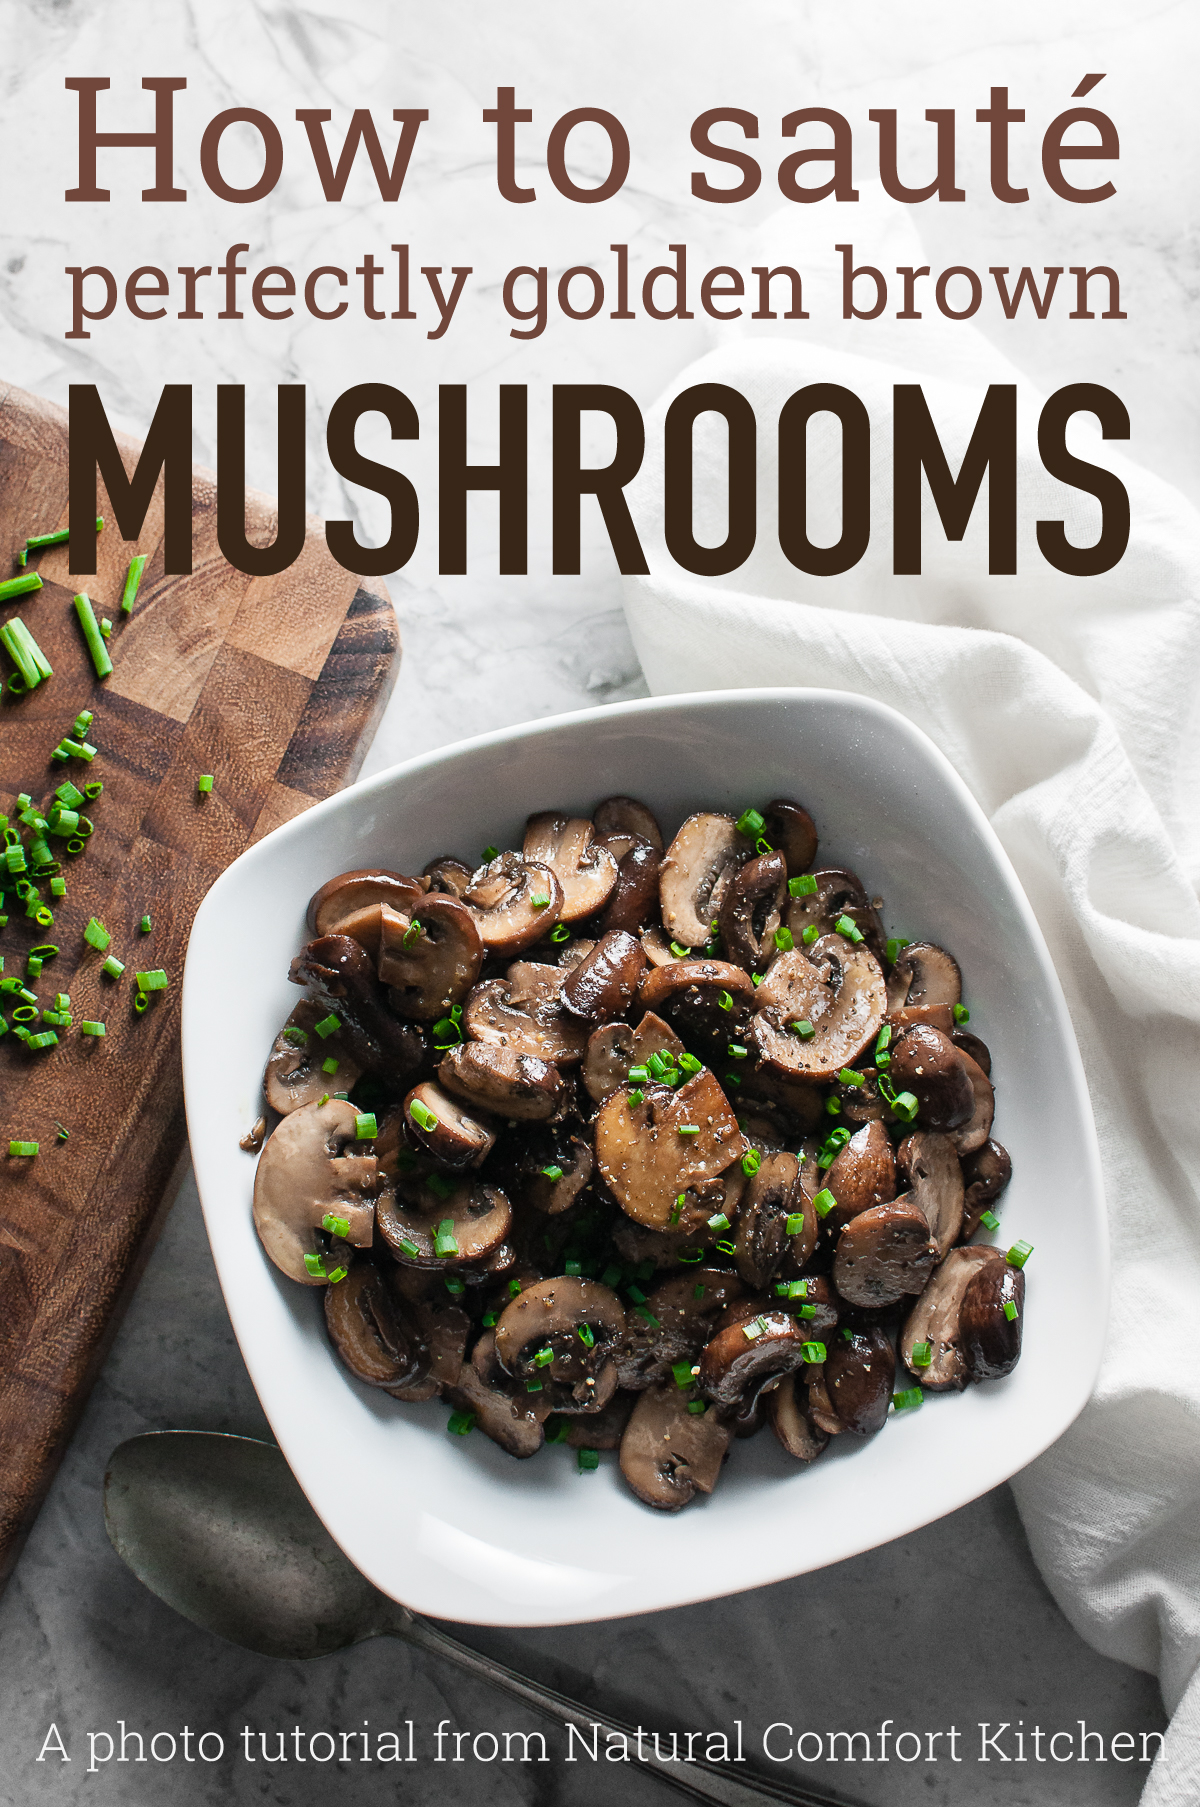 Never end up with soupy sauteed mushrooms again.